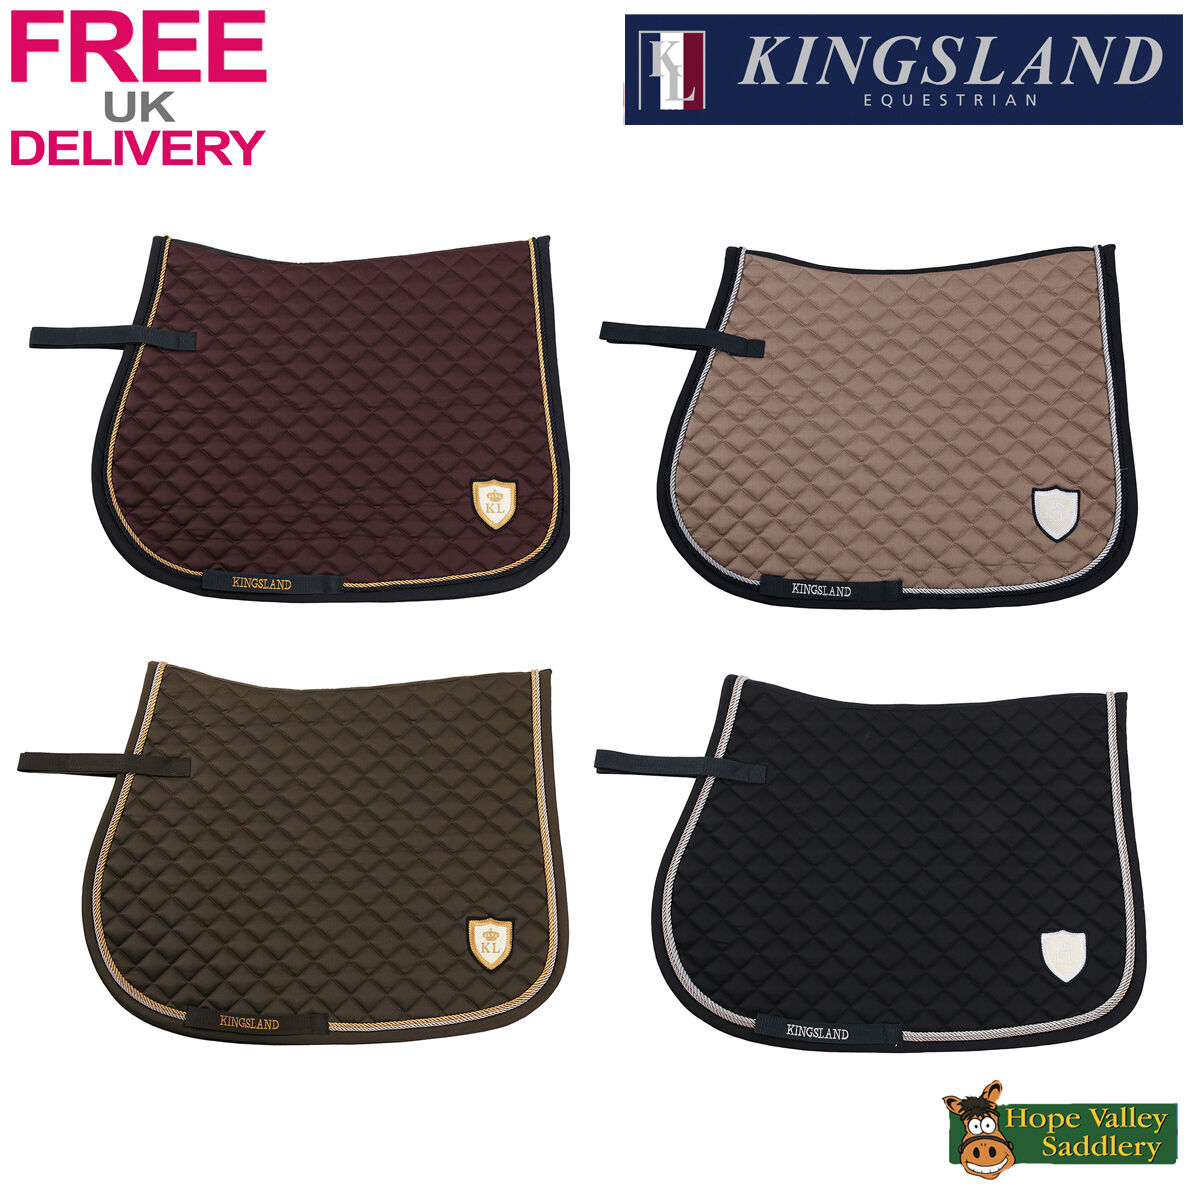 Kingsland  Topaz Saddlepad (153-HGS-296) BNWT FREE UK Shipping  shop now